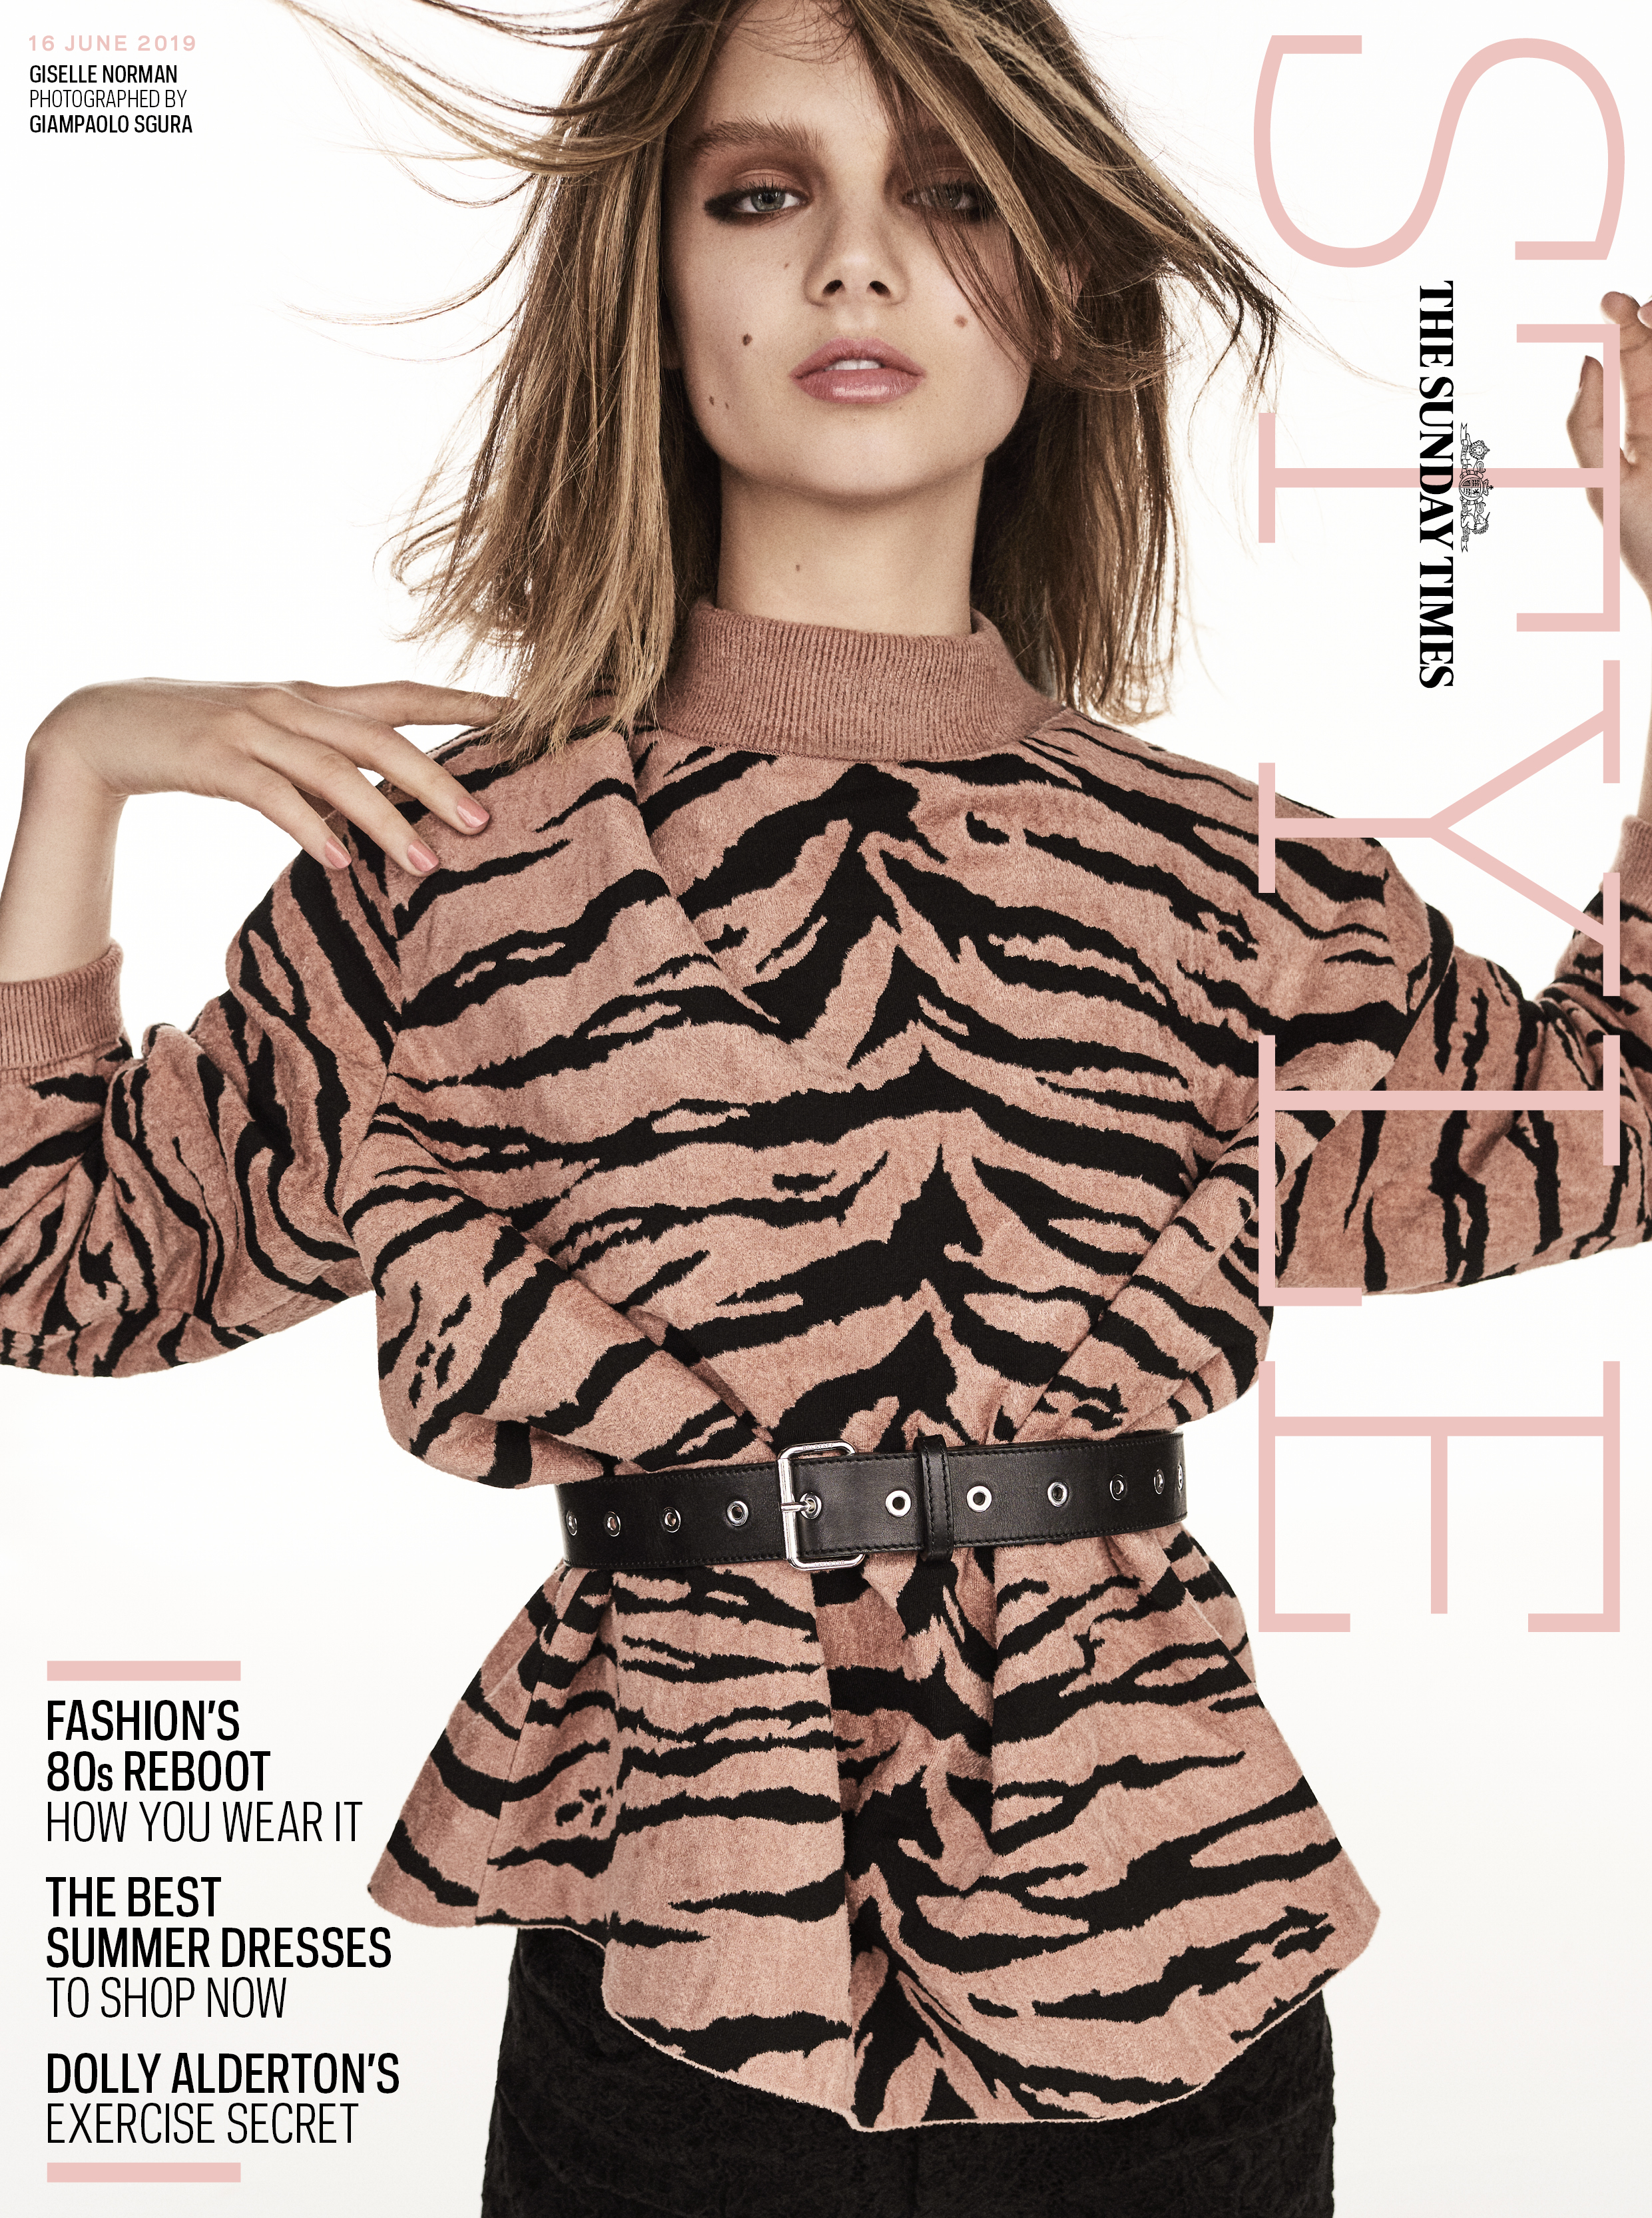 The Sunday Times STYLE 16th June 2019